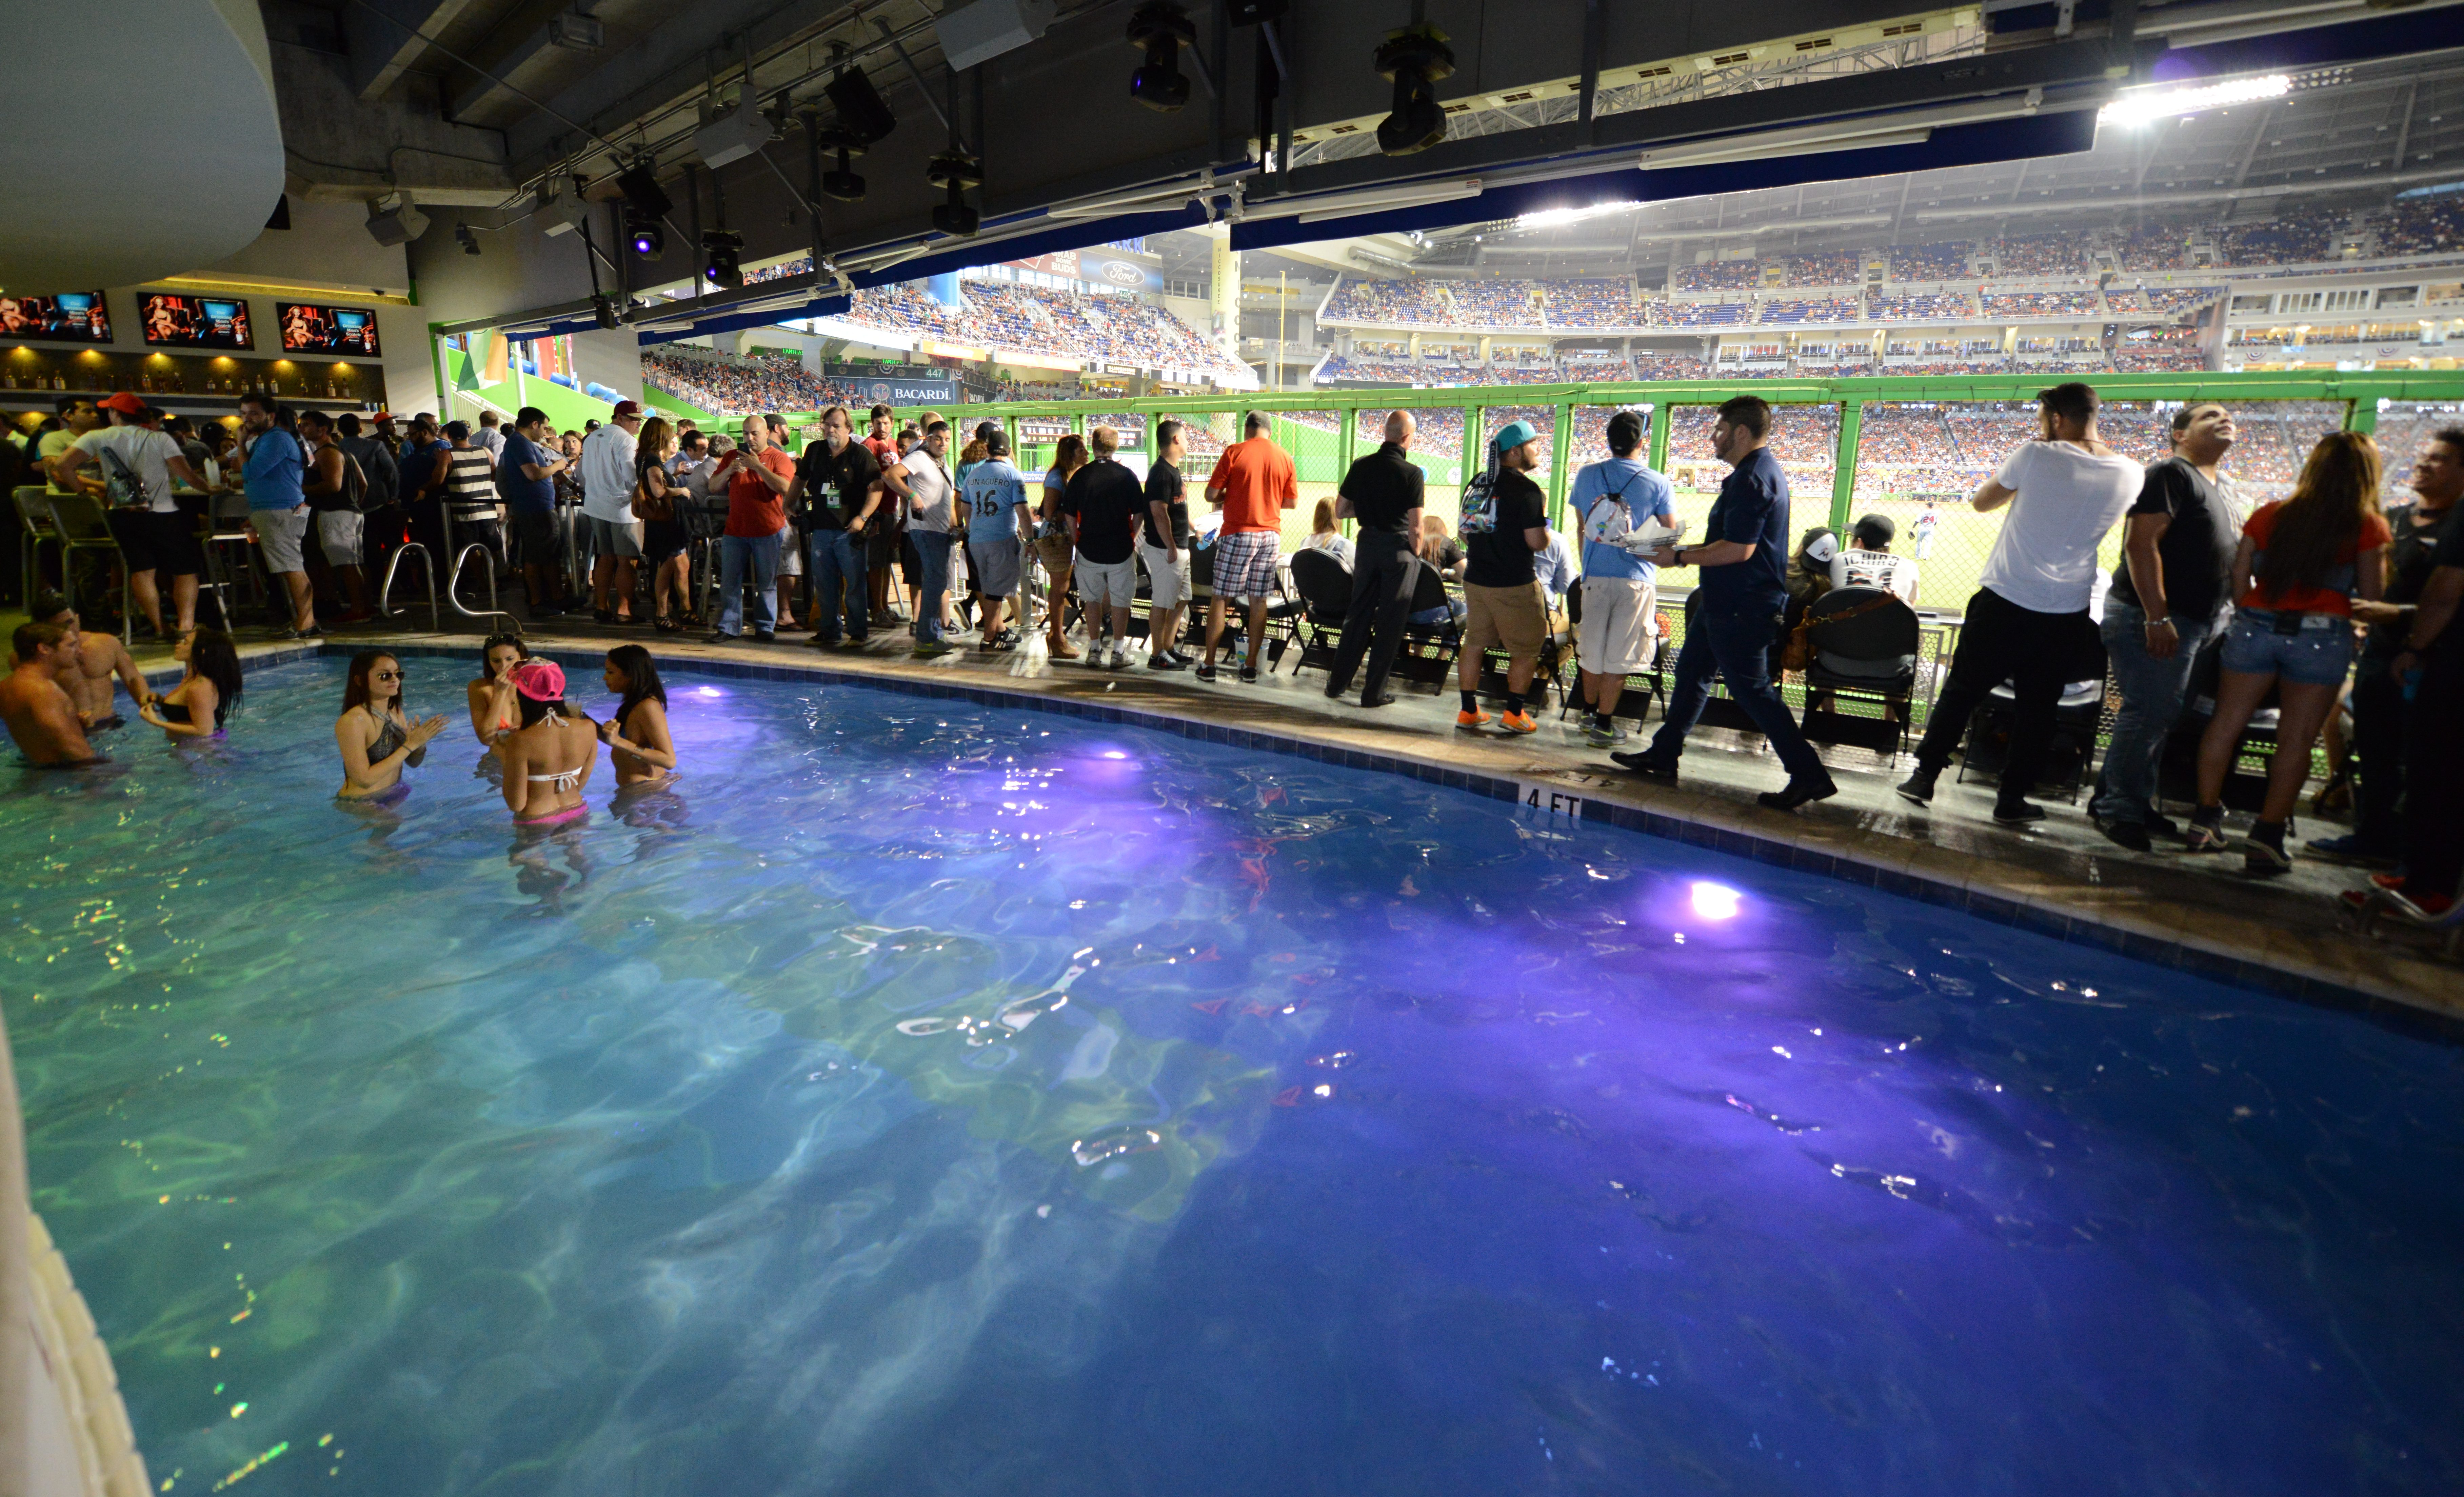 Download Tampa Bay Stadium Pool